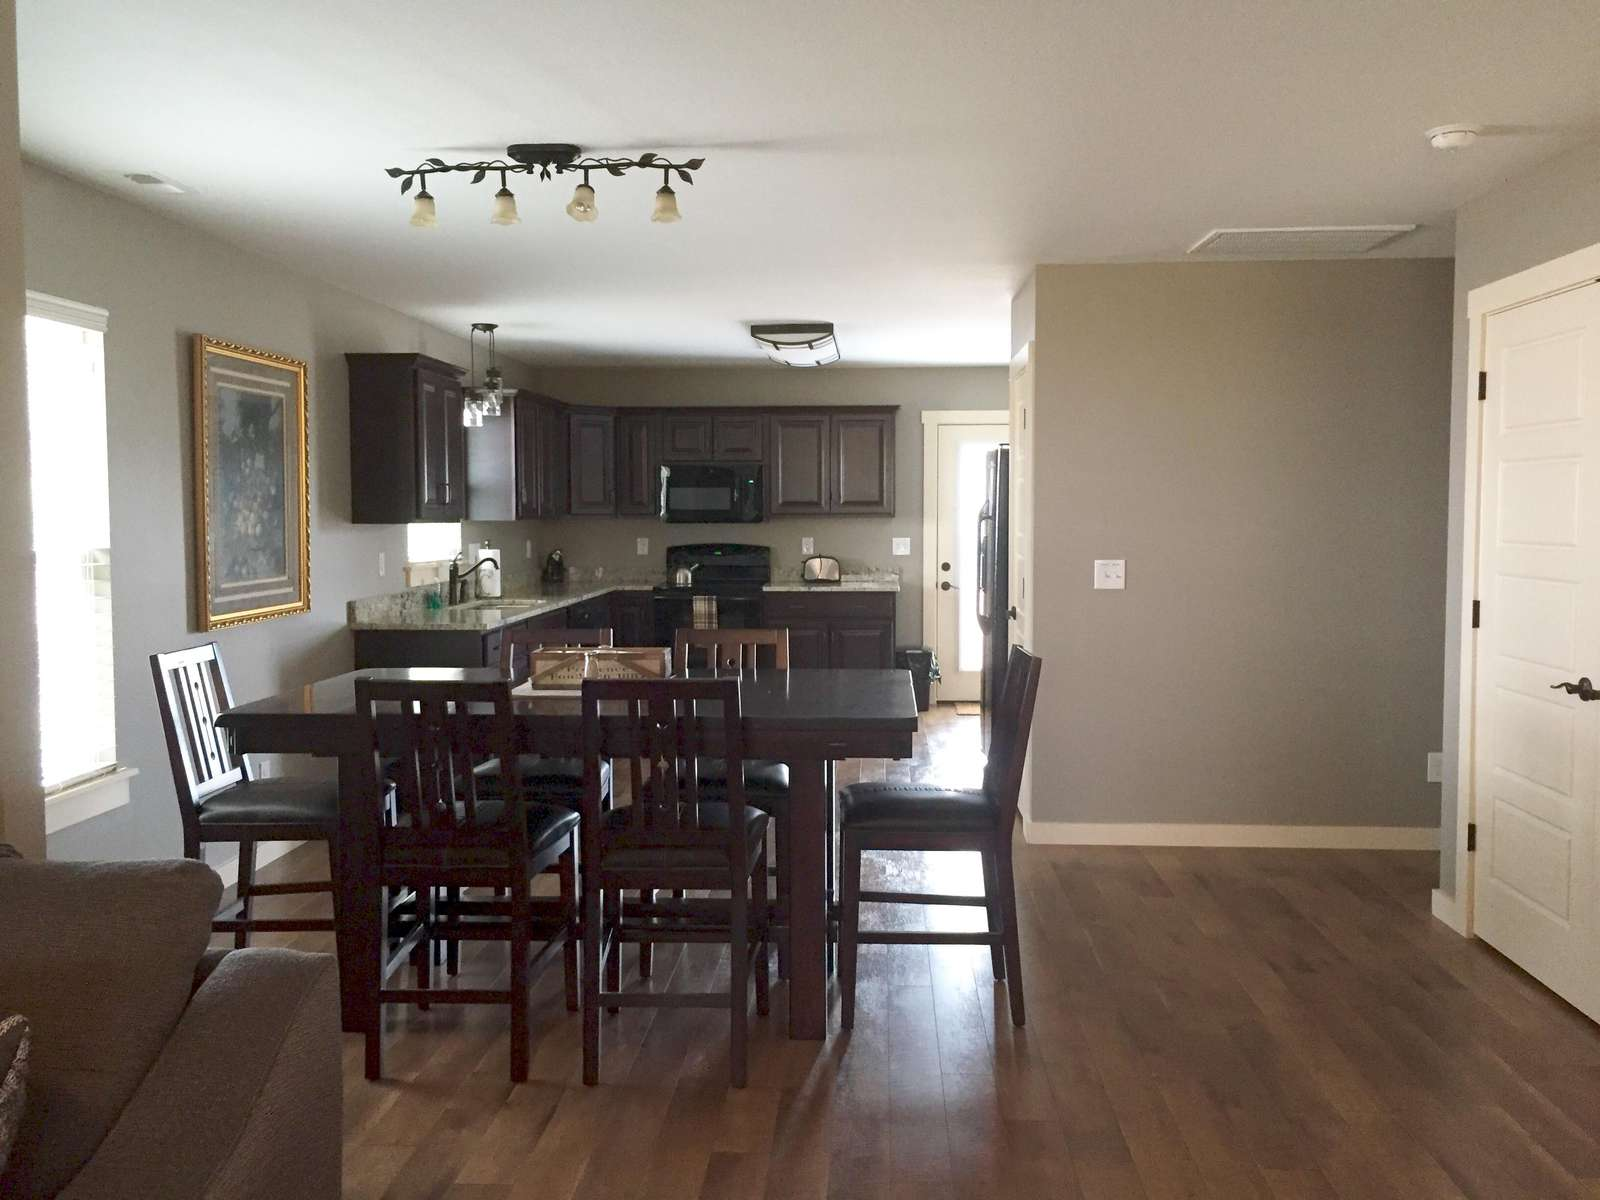 Dikning Room and Kitchen